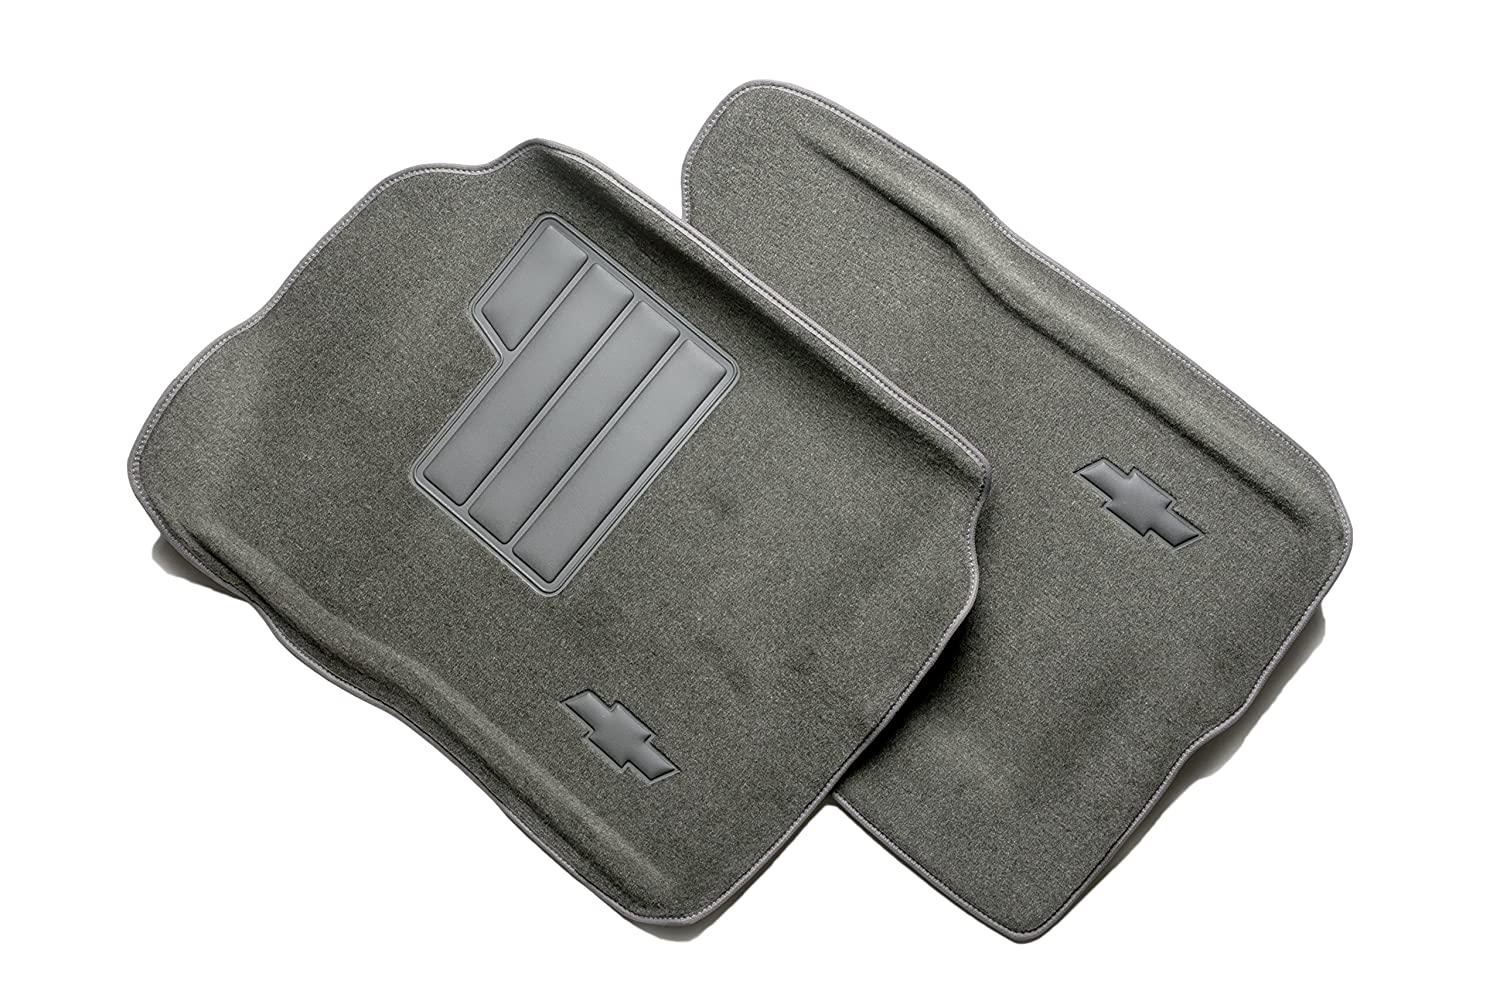 GM Accessories 12498798 Front Carpeted Floor Mats in Dark Pewter with Bowtie Logo General Motors